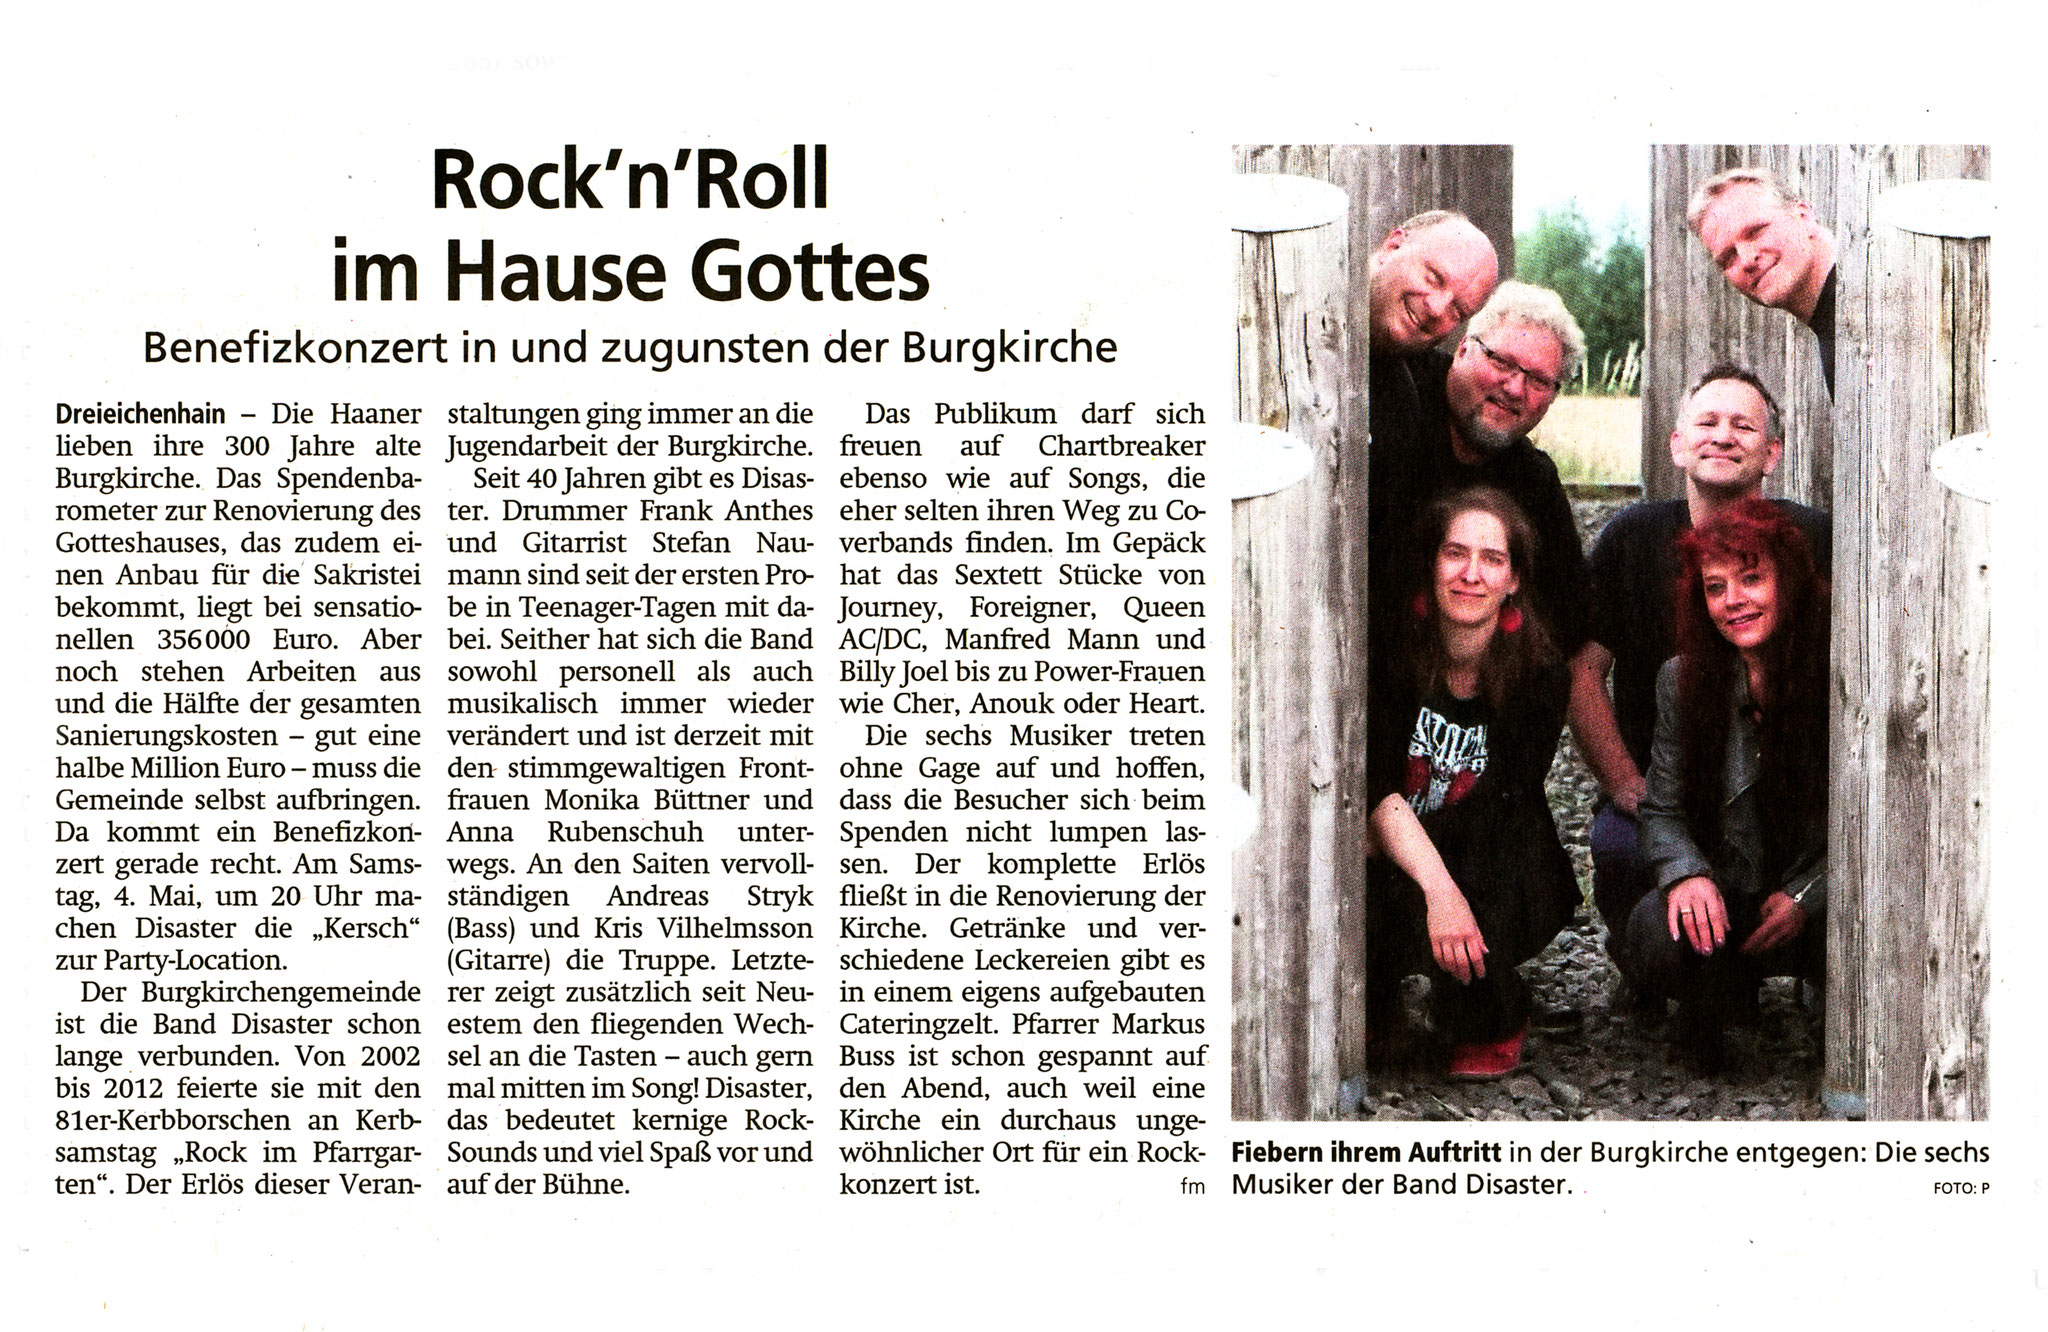 Offenbach Post, 26. April 2019